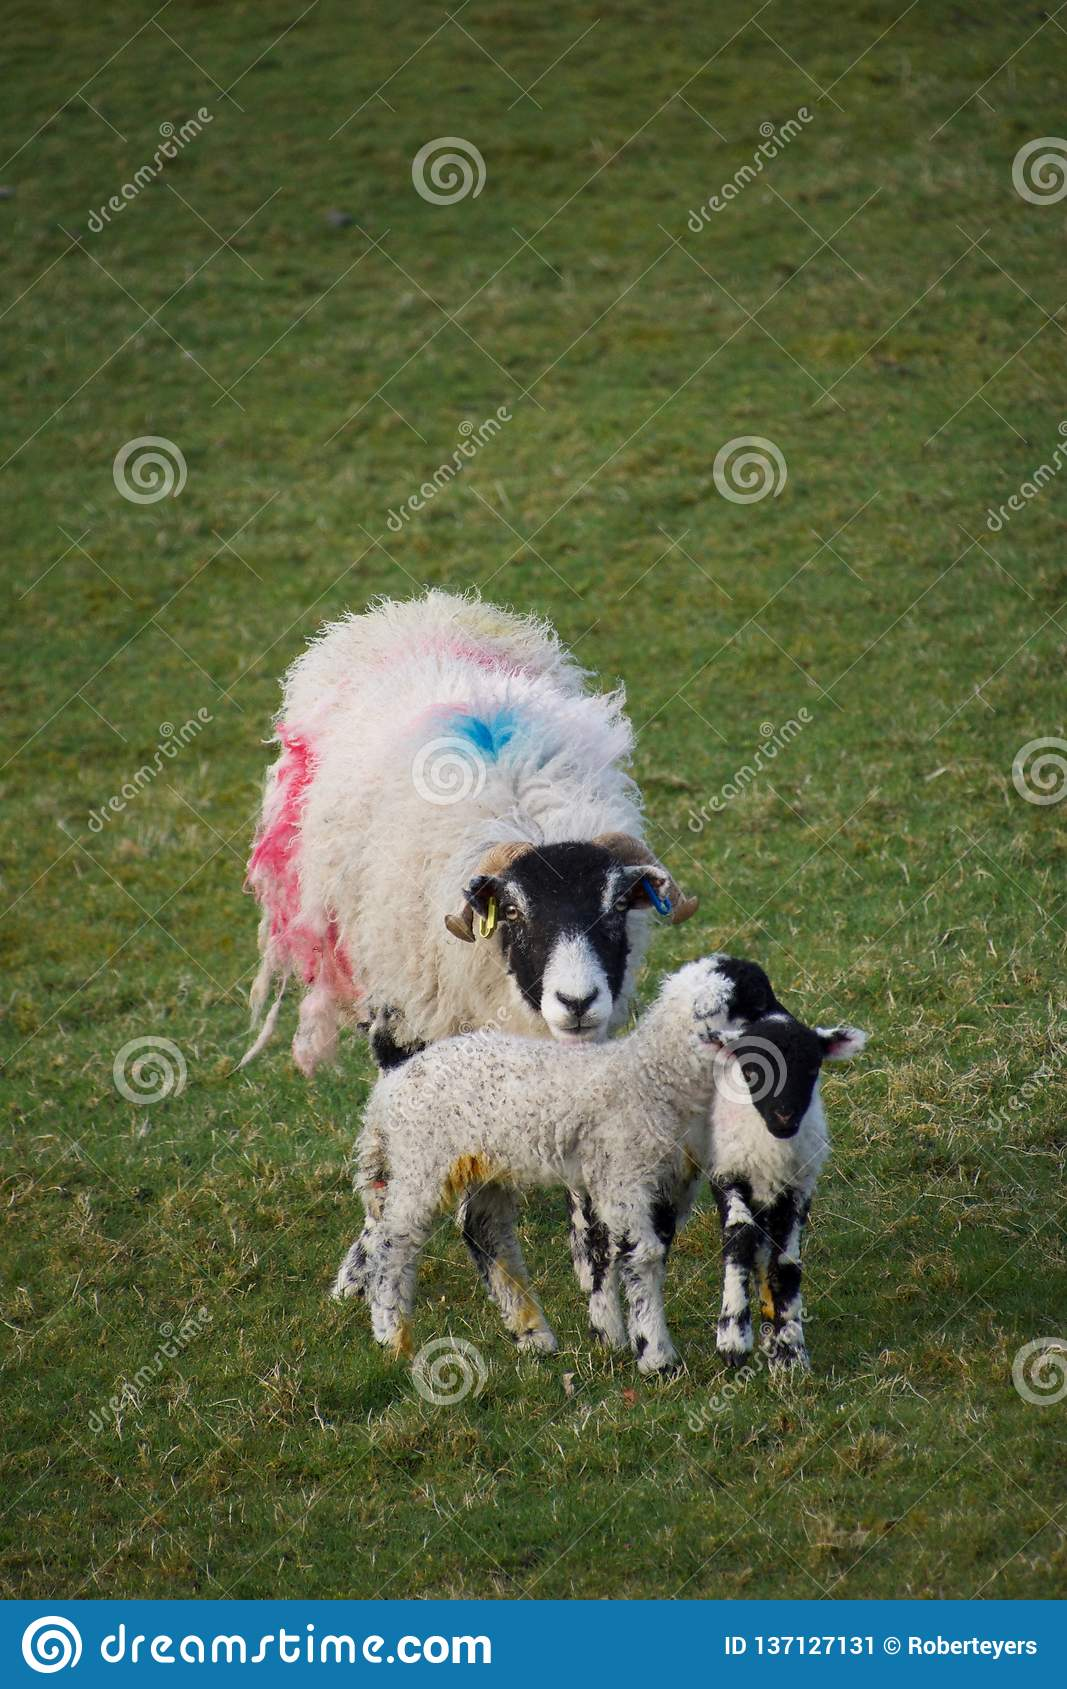 Mother sheep ewe with two young lambs